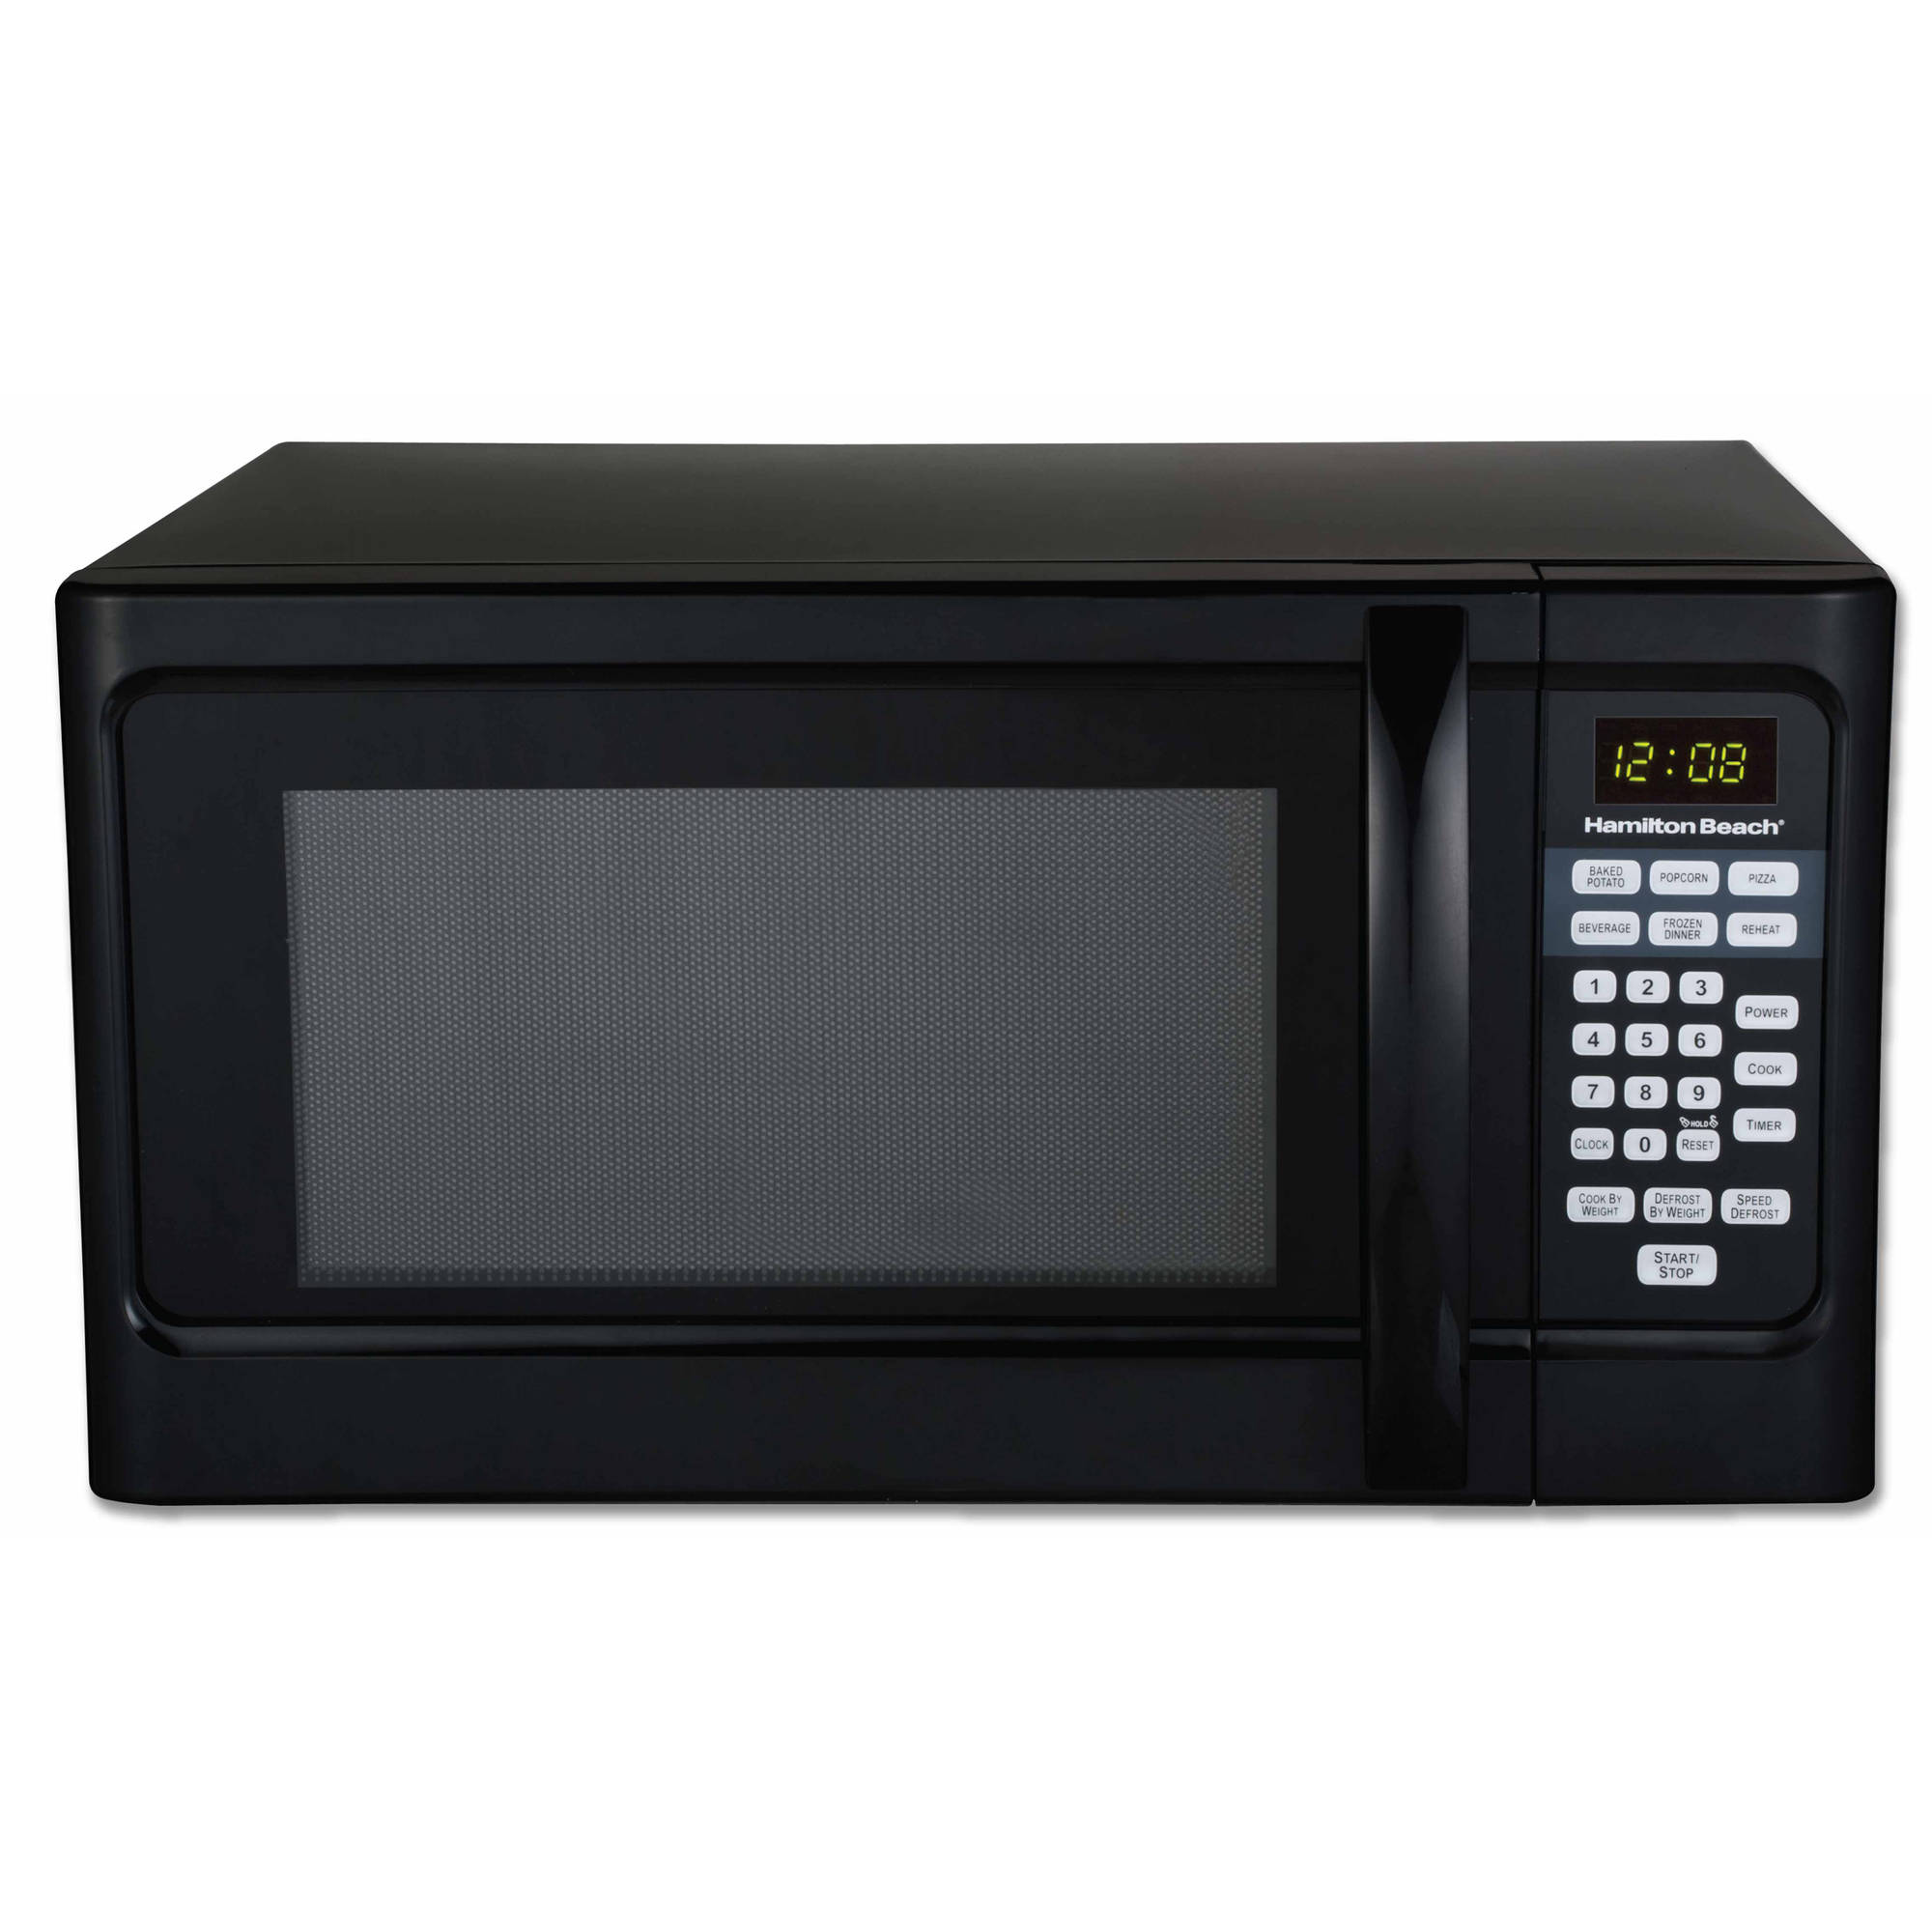 Black Microwave Ovens: Hamilton Beach 1.1 Cu Ft Microwave Oven, Black